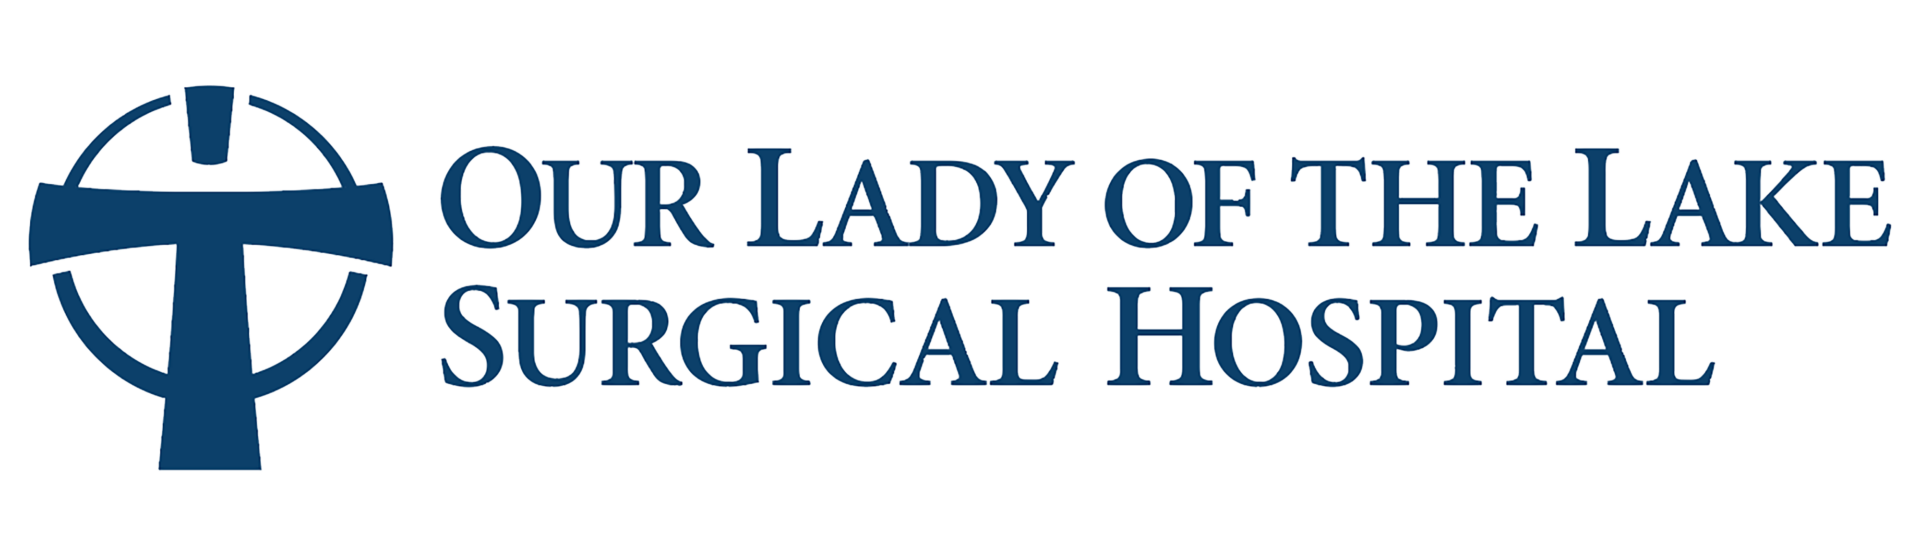 Our Lady of the Lake Surgical Hospital